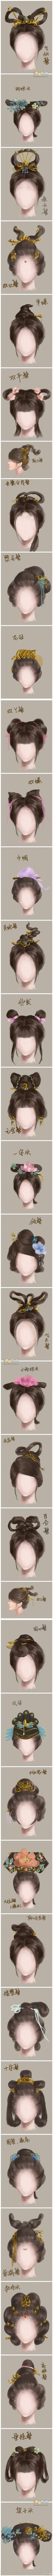 awesome asian hair style :)